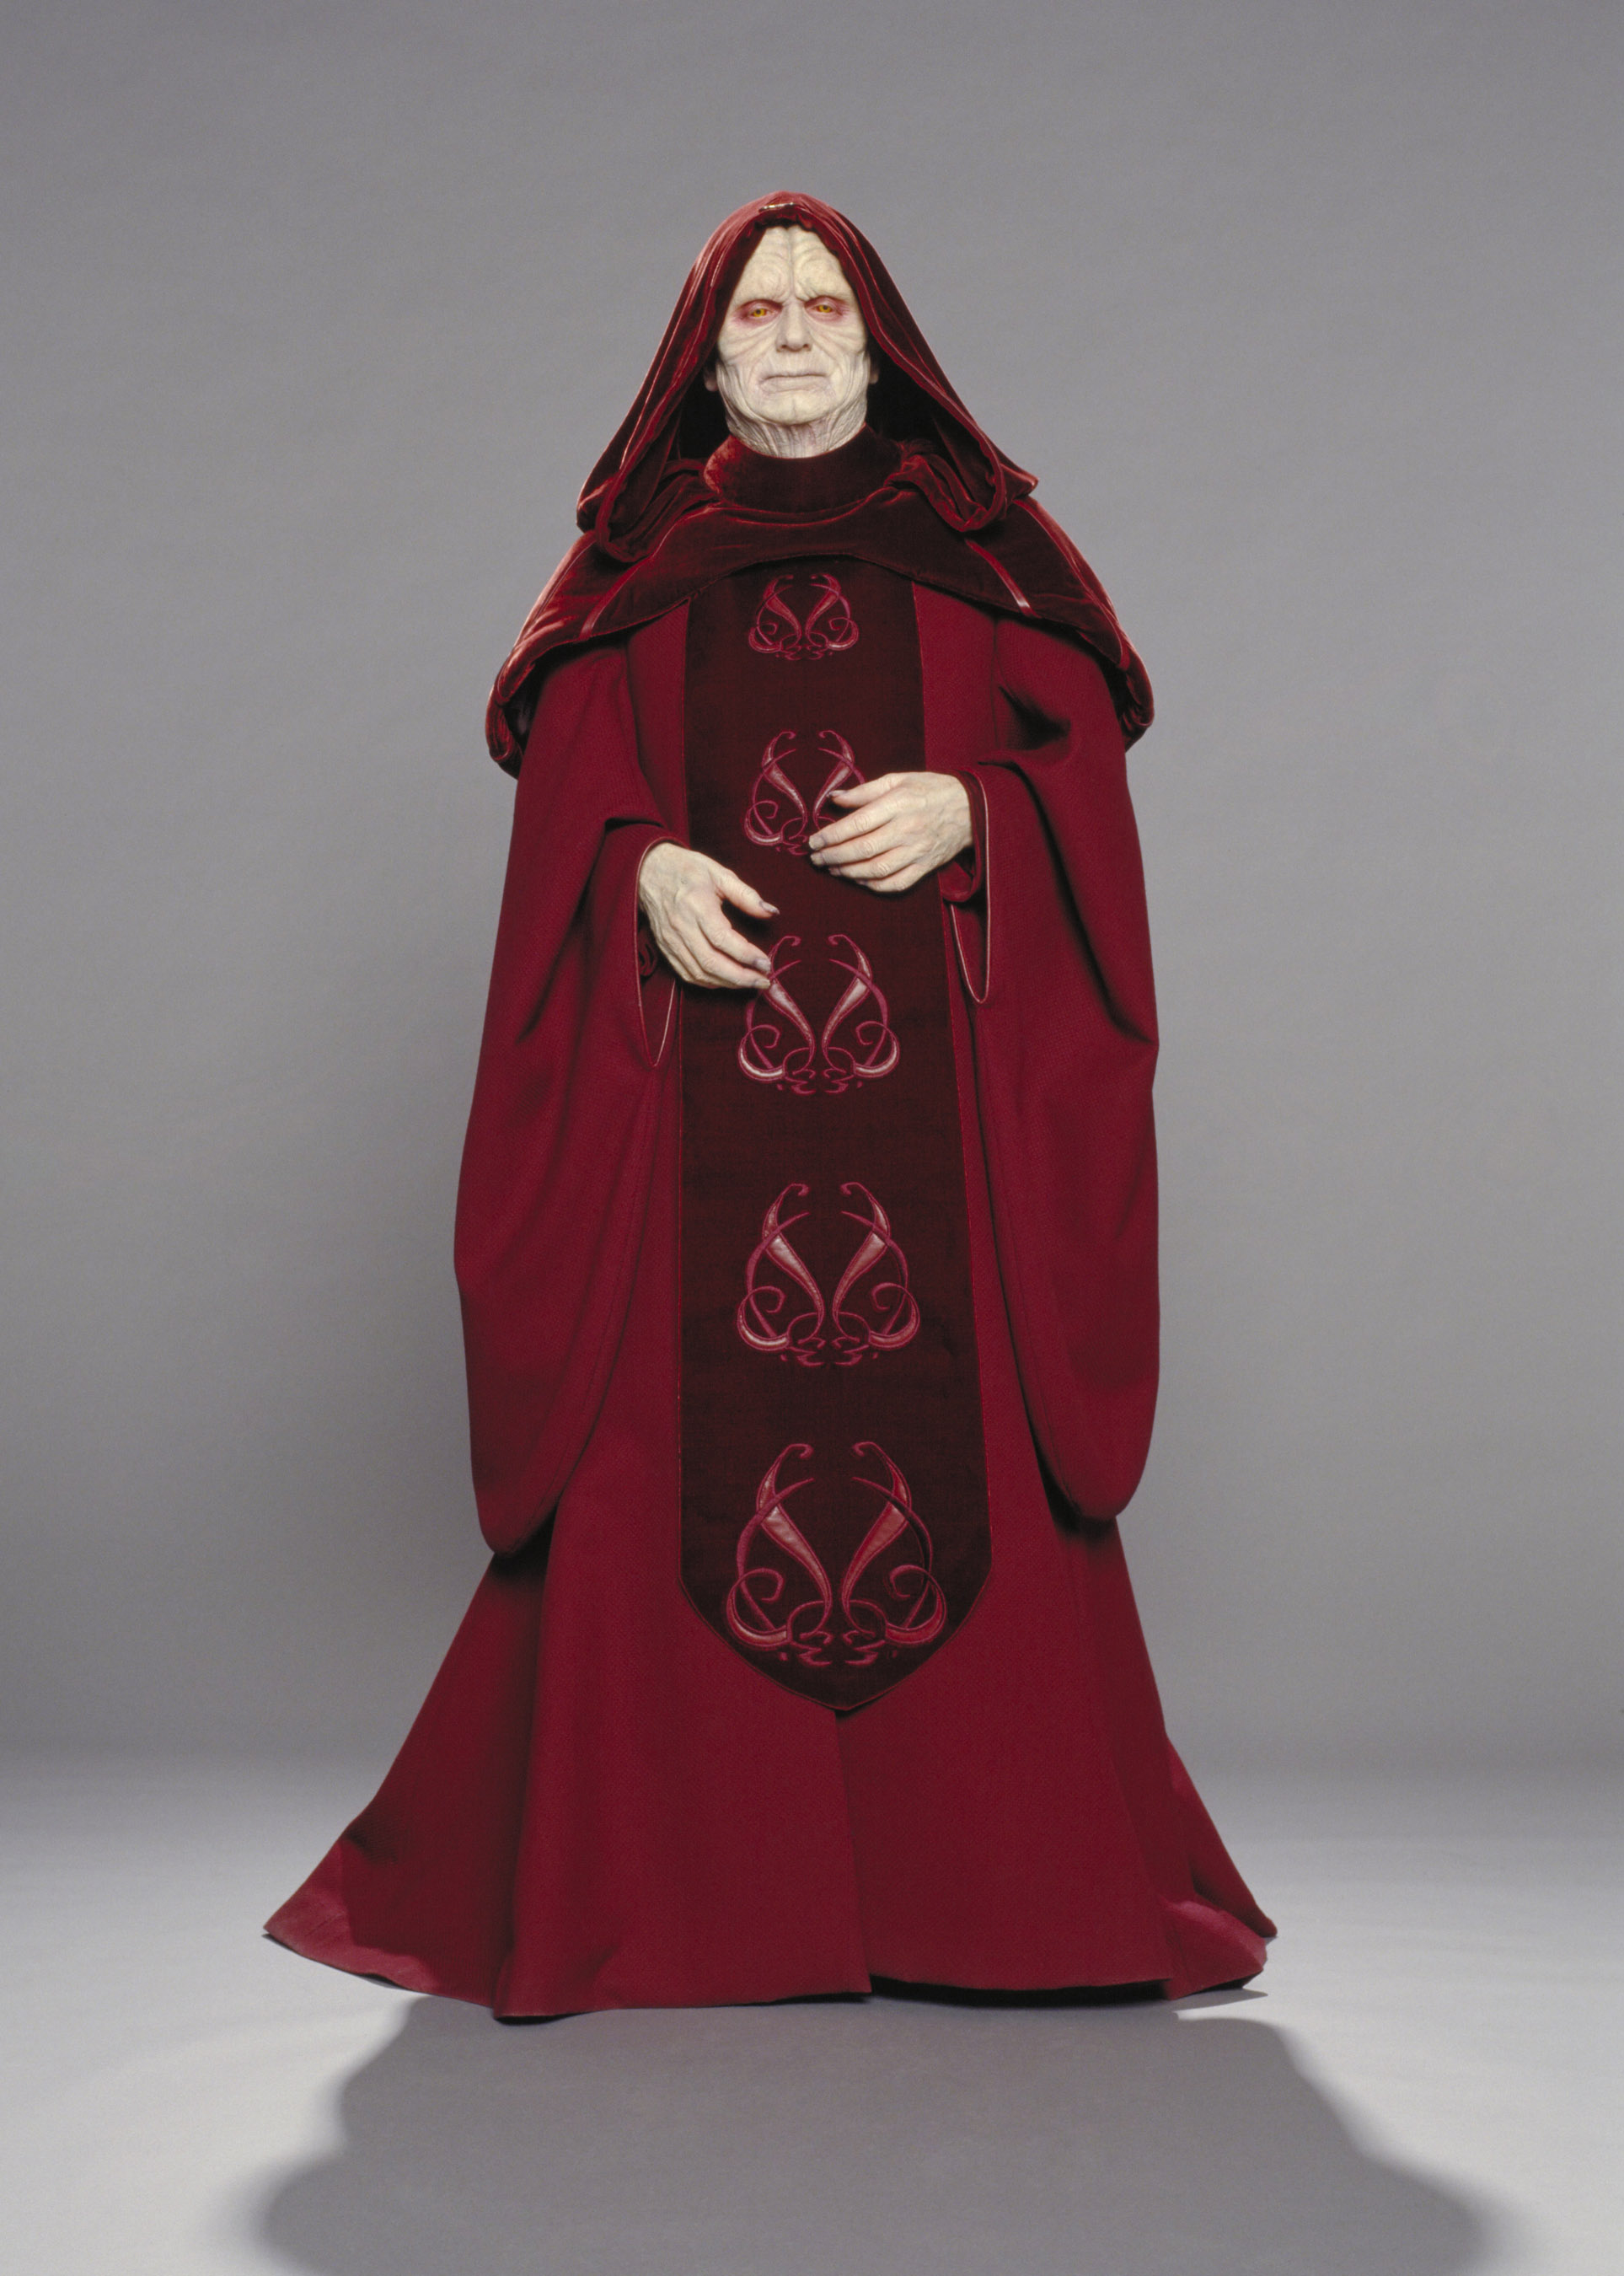 Star Wars and the Power of Costume at Detroit Institute of Arts